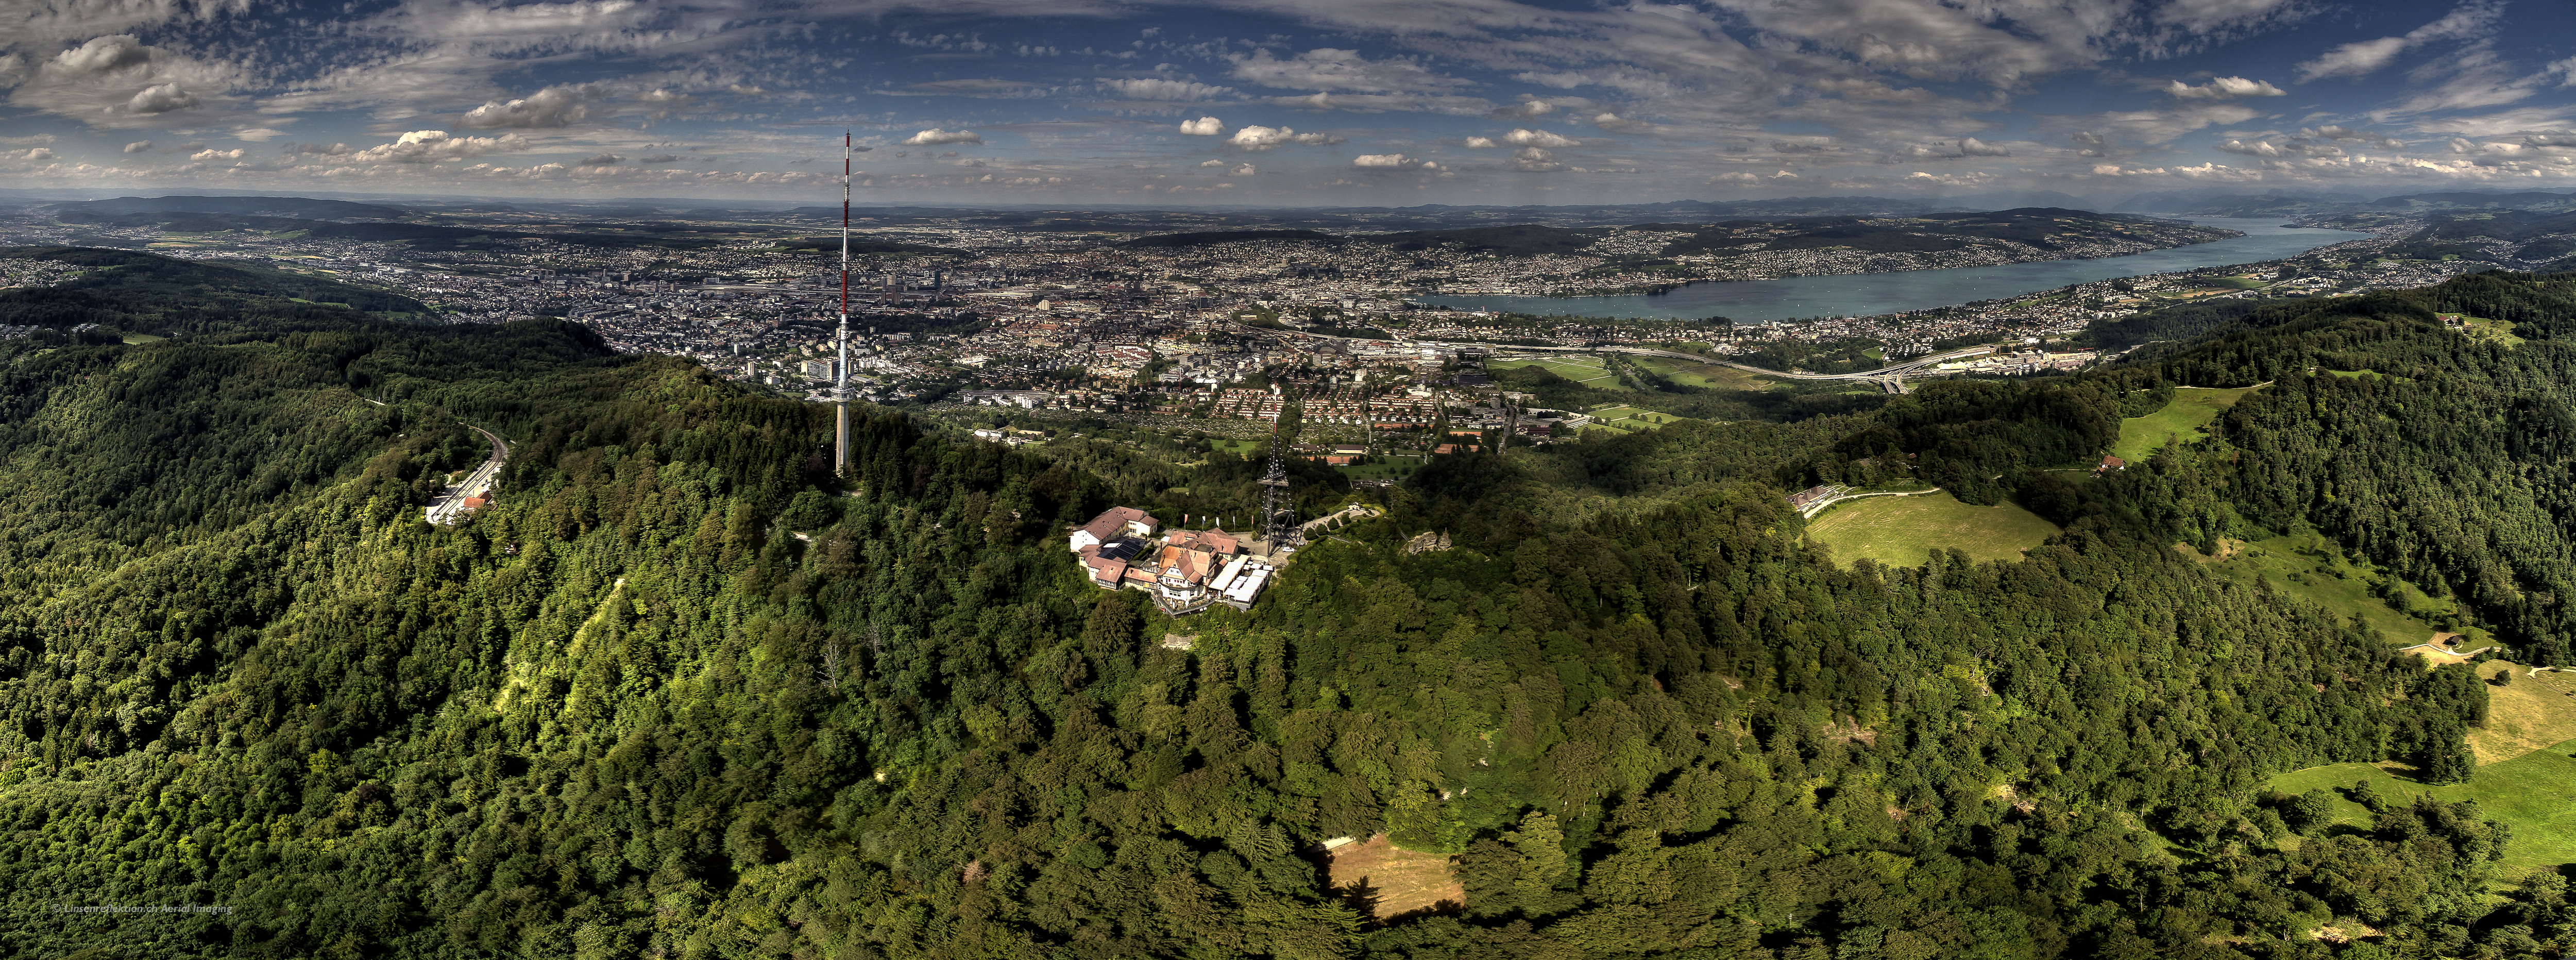 Zurich Switzerland, Uetliberg